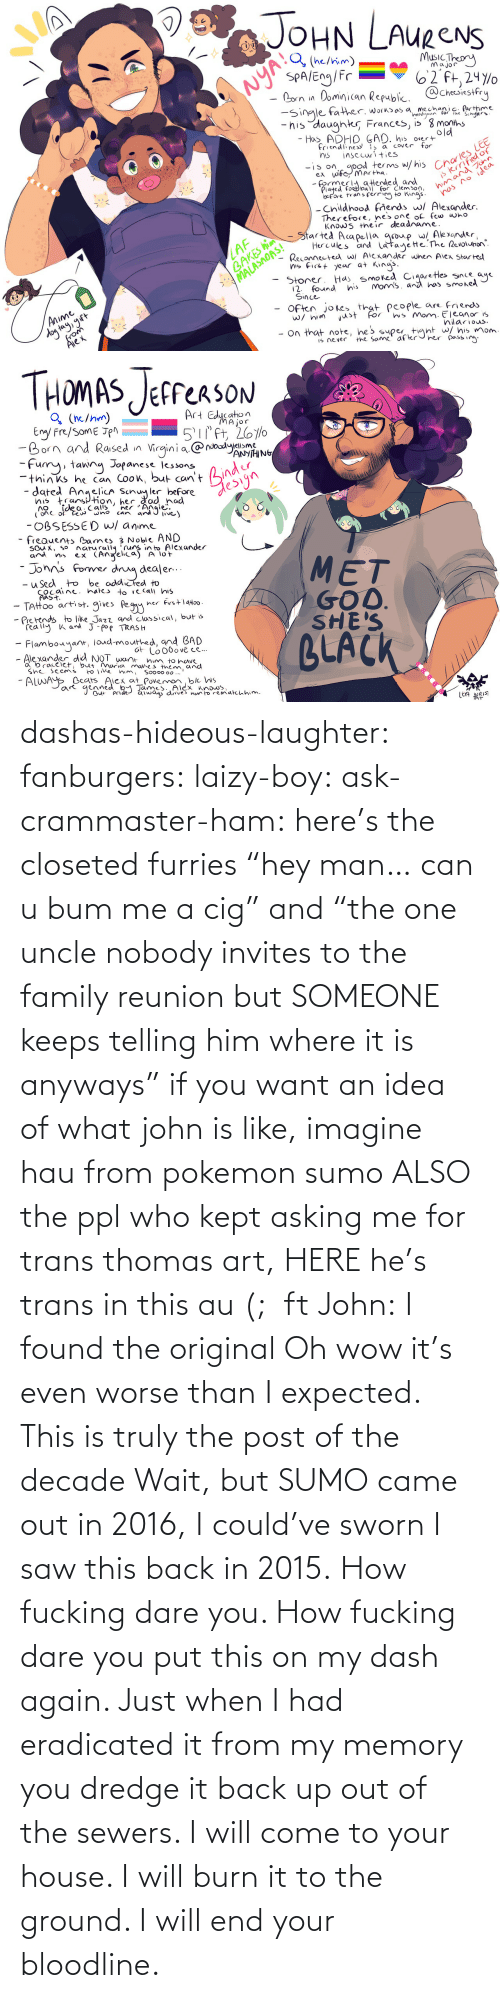 "decade: dashas-hideous-laughter:  fanburgers:   laizy-boy:   ask-crammaster-ham:   here's the closeted furries ""hey man… can u bum me a cig"" and ""the one uncle nobody invites to the family reunion but SOMEONE keeps telling him where it is anyways""   if you want an idea of what john is like, imagine hau from pokemon sumo ALSO the ppl who kept asking me for trans thomas art, HERE he's trans in this au (;  ft John:    I found the original     Oh wow it's even worse than I expected. This is truly the post of the decade    Wait, but SUMO came out in 2016, I could've sworn I saw this back in 2015.    How fucking dare you. How fucking dare you put this on my dash again. Just when I had eradicated it from my memory you dredge it back up out of the sewers. I will come to your house. I will burn it to the ground. I will end your bloodline."